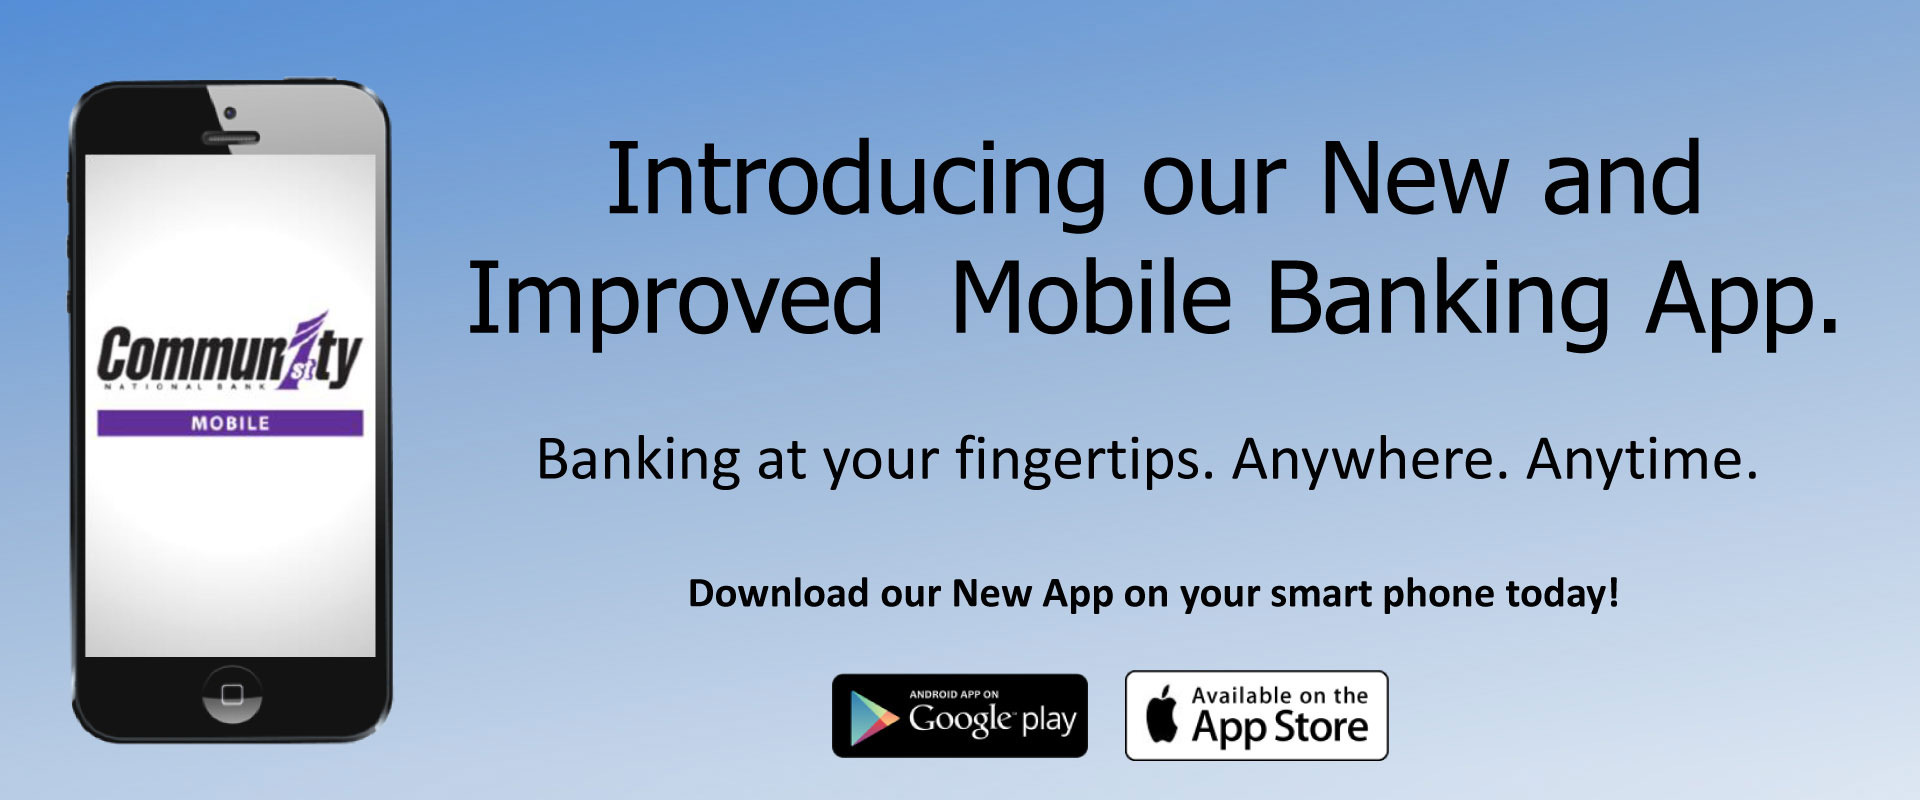 Introducing our new, improved mobile banking app. Download on your smartphone today.